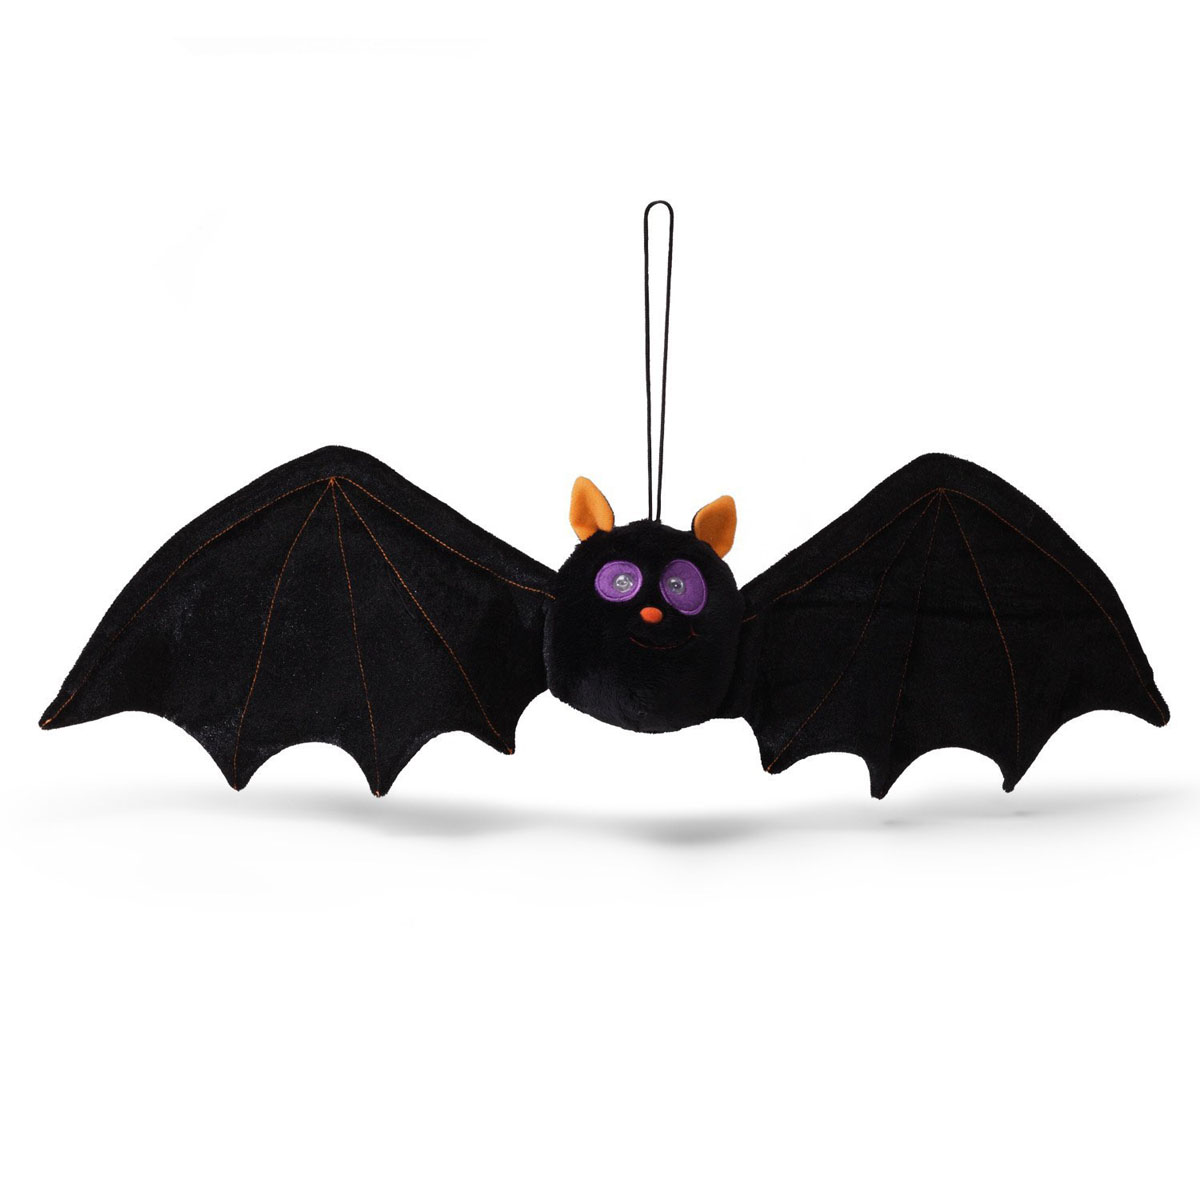 halloween bat toy decorations party decorations motion sensor with bats hanging ornament - Halloween Bats Decorations